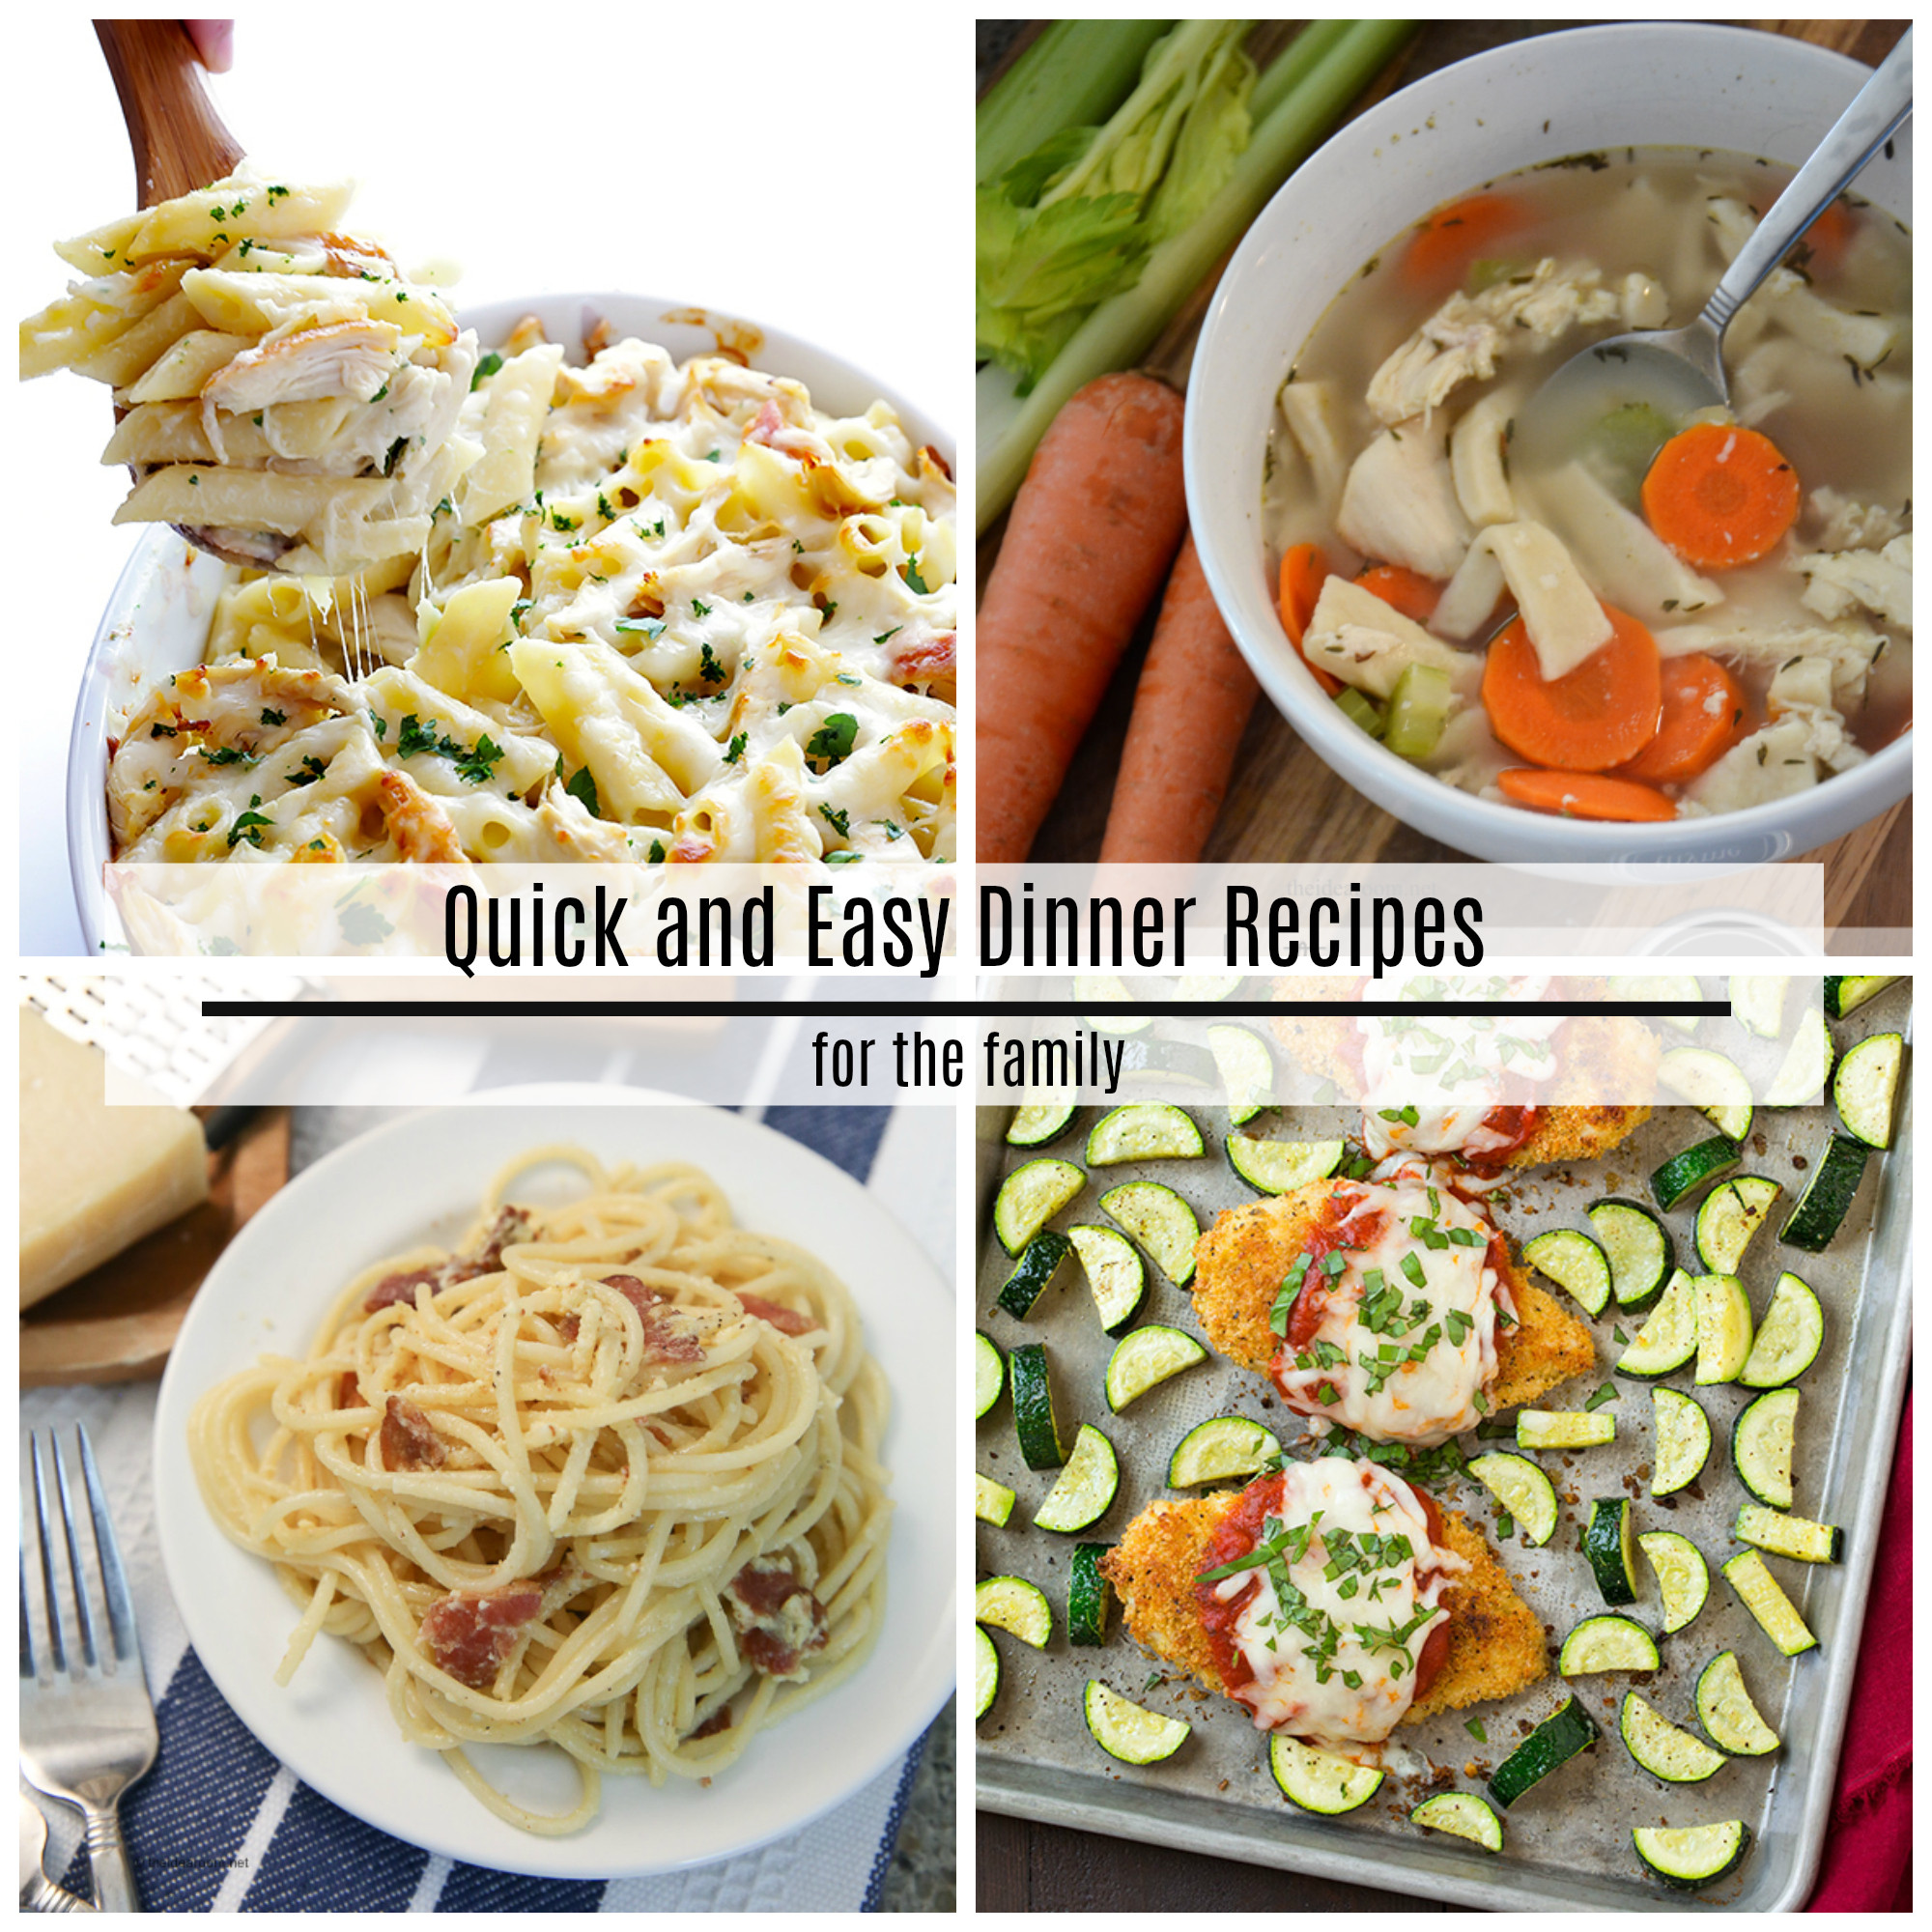 Easy Dinner Recipe  Quick and Easy Dinner Recipes The Idea Room